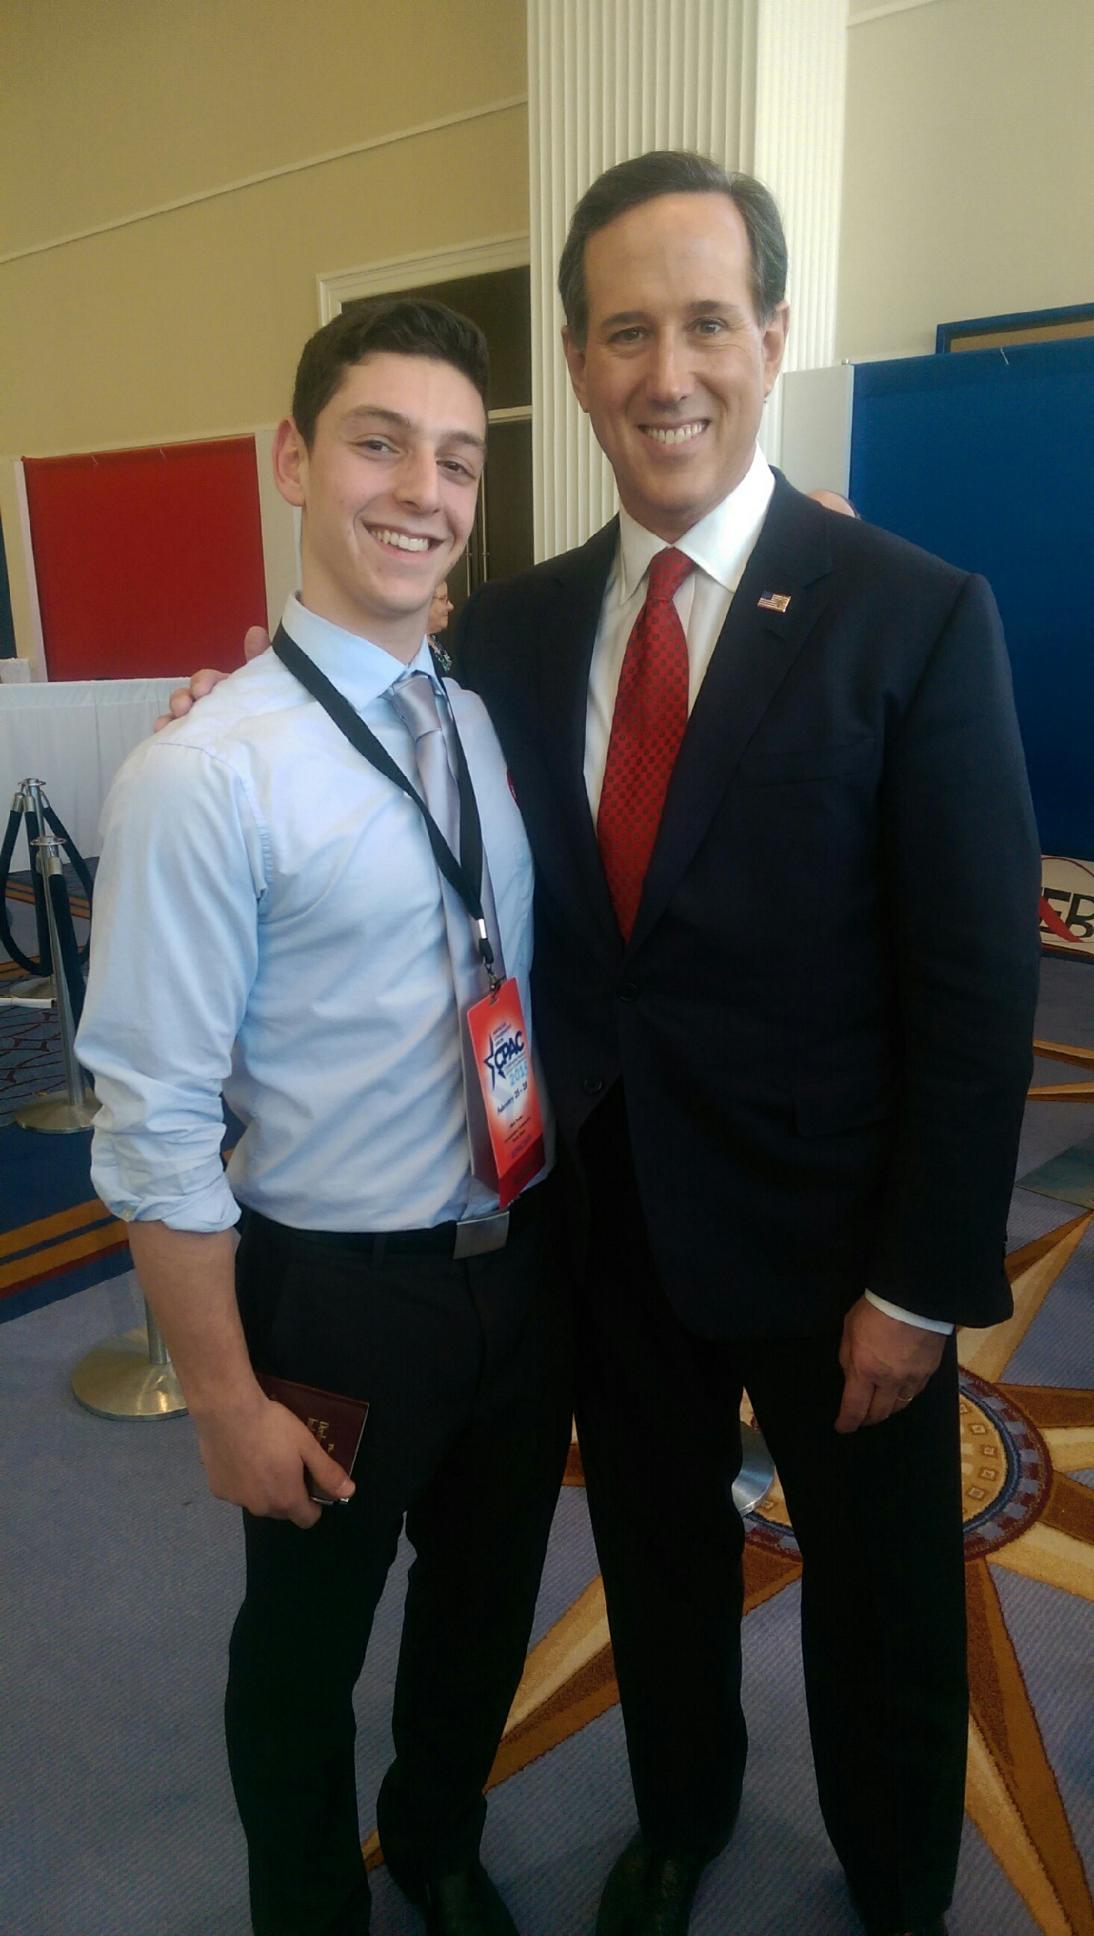 Dan with his hero, Rick Santorum